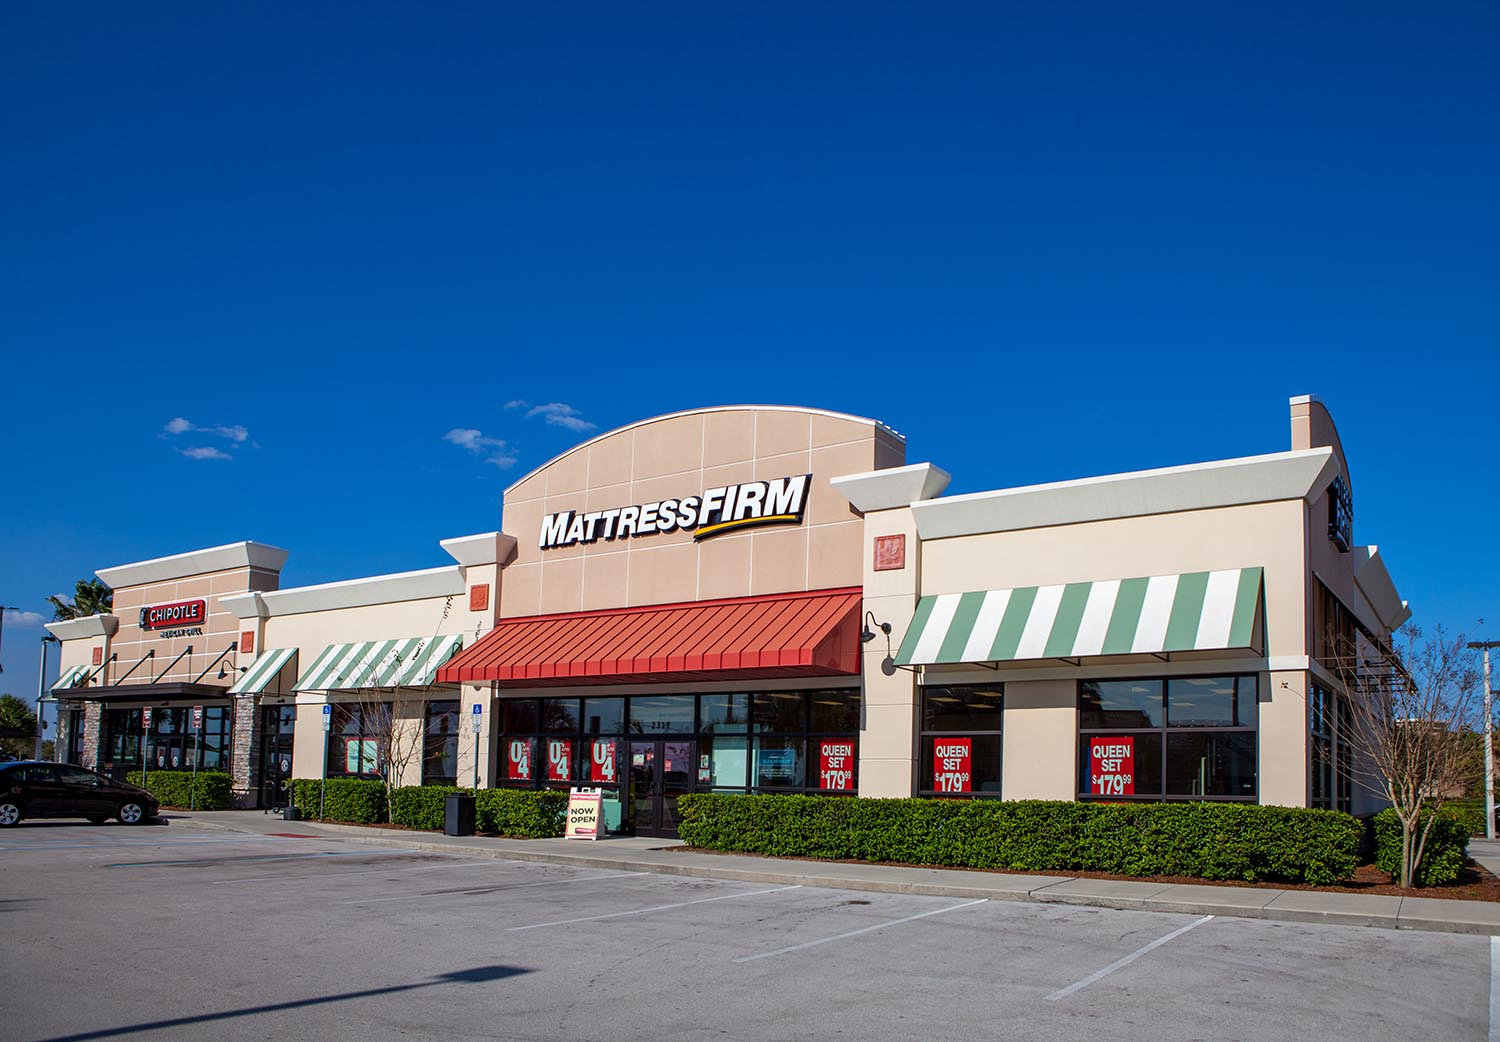 Mattress Firm located in Viera